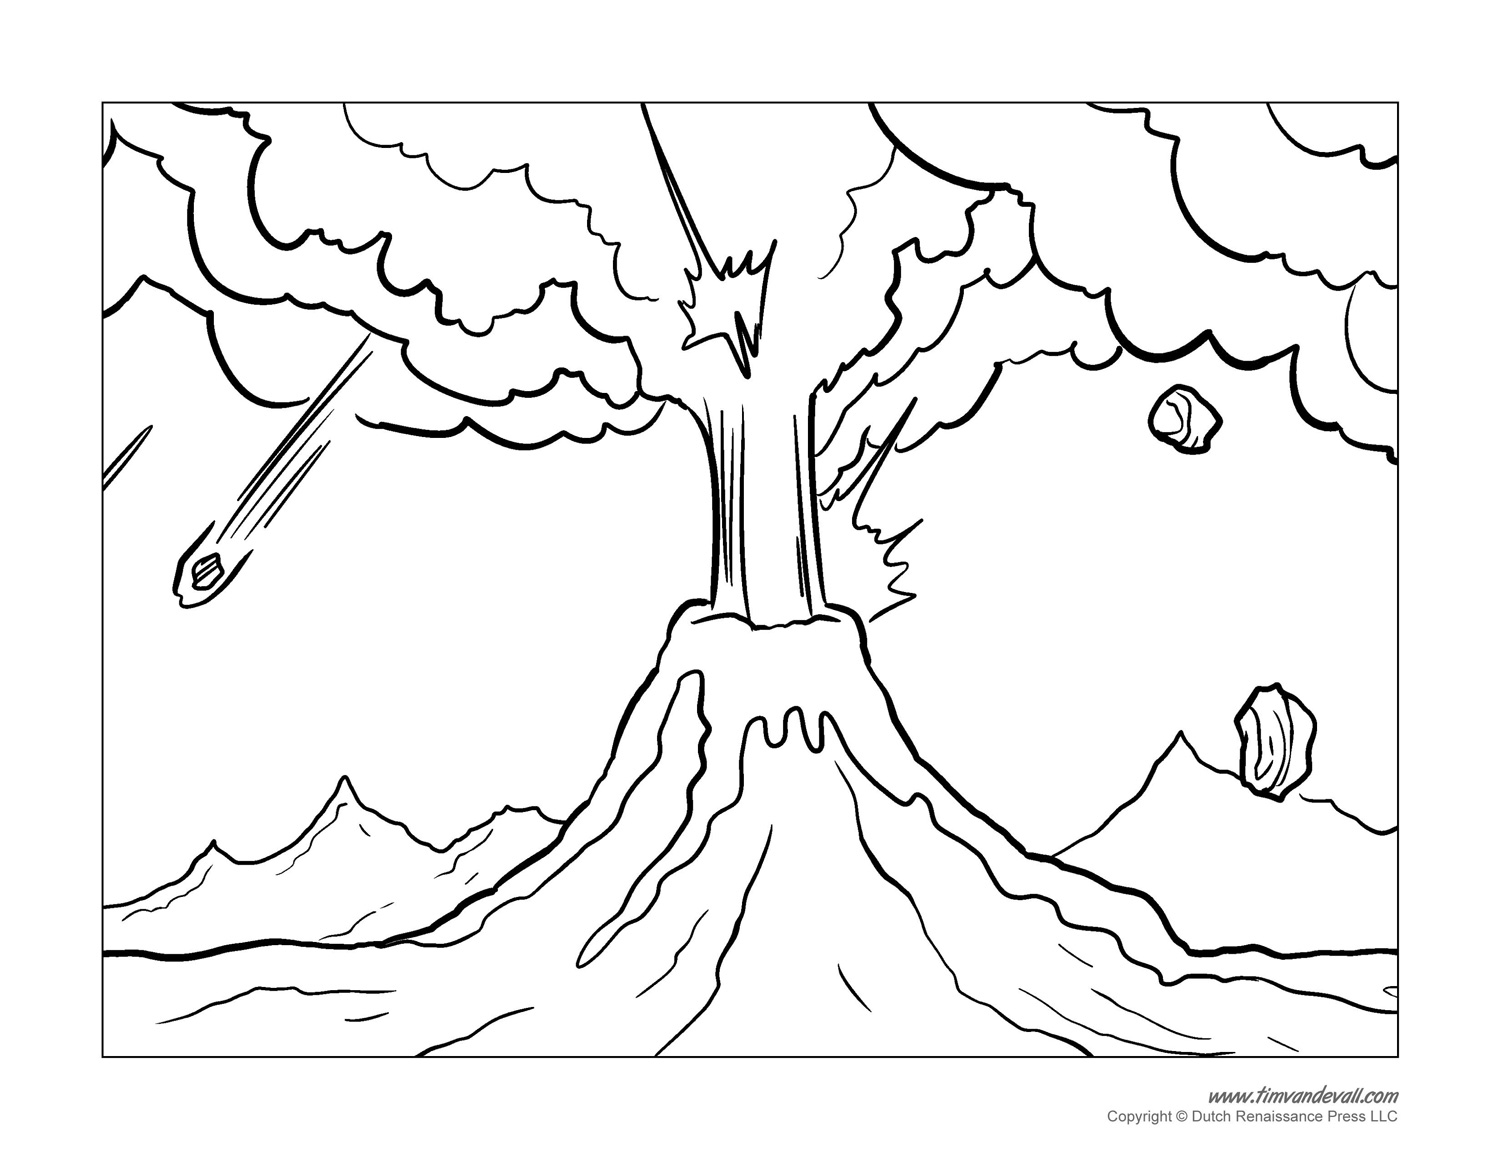 Teachers you also may print these volcano coloring pages for the classroom students are welcome to include these illustrations in any educational project